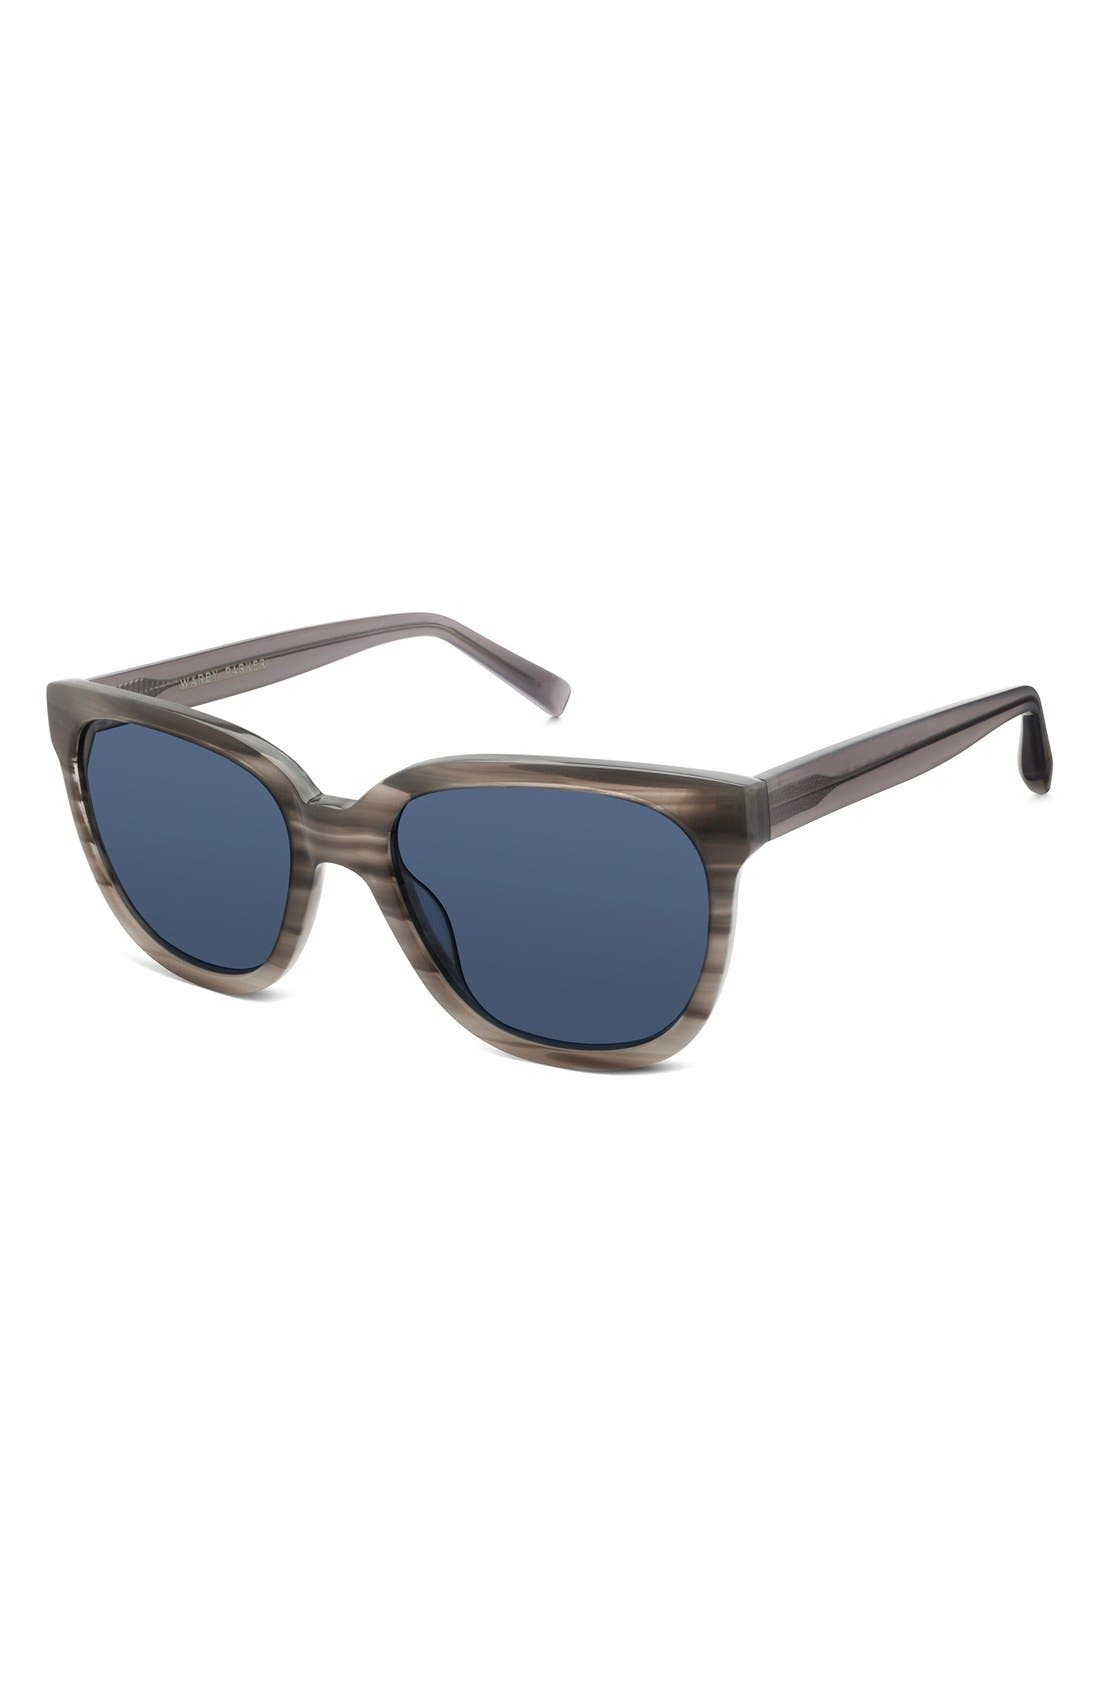 WARBY PARKER,                             'Reilly' 55mm Polarized Sunglasses,                             Alternate thumbnail 3, color,                             060